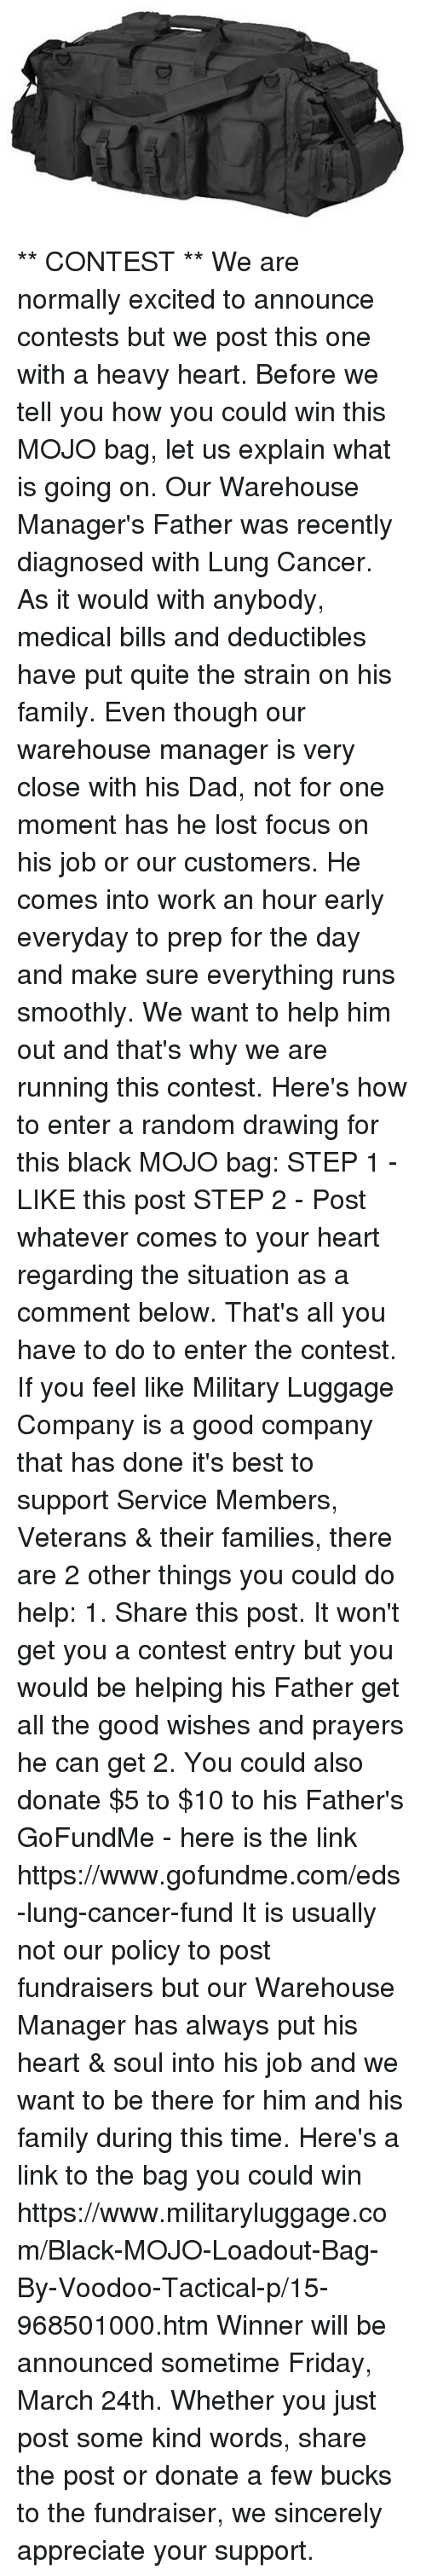 mojos: D1  D ** CONTEST **  We are normally excited to announce contests but we post this one with a heavy heart.  Before we tell you how you could win this MOJO bag, let us explain what is going on.  Our Warehouse Manager's Father was recently diagnosed with Lung Cancer.  As it would with anybody, medical bills and deductibles have put quite the strain on his family.  Even though our warehouse manager is very close with his Dad, not for one moment has he lost focus on his job or our customers.  He comes into work an hour early everyday to prep for the day and make sure everything runs smoothly.  We want to help him out and that's why we are running this contest.  Here's how to enter a random drawing for this black MOJO bag:  STEP 1 - LIKE this post  STEP 2 - Post whatever comes to your heart regarding the situation as a comment below.  That's all you have to do to enter the contest.  If you feel like Military Luggage Company is a good company that has done it's best to support Service Members, Veterans & their families, there are 2 other things you could do help:  1.  Share this post.  It won't get you a contest entry but you would be helping his Father get all the good wishes and prayers he can get    2.  You could also donate $5 to $10 to his Father's GoFundMe - here is the link https://www.gofundme.com/eds-lung-cancer-fund  It is usually not our policy to post fundraisers but our Warehouse Manager has always put his heart & soul into his job and we want to be there for him and his family during this time.  Here's a link to the bag you could win https://www.militaryluggage.com/Black-MOJO-Loadout-Bag-By-Voodoo-Tactical-p/15-968501000.htm  Winner will be announced sometime Friday, March 24th.  Whether you just post some kind words, share the post or donate a few bucks to the fundraiser, we sincerely appreciate your support.